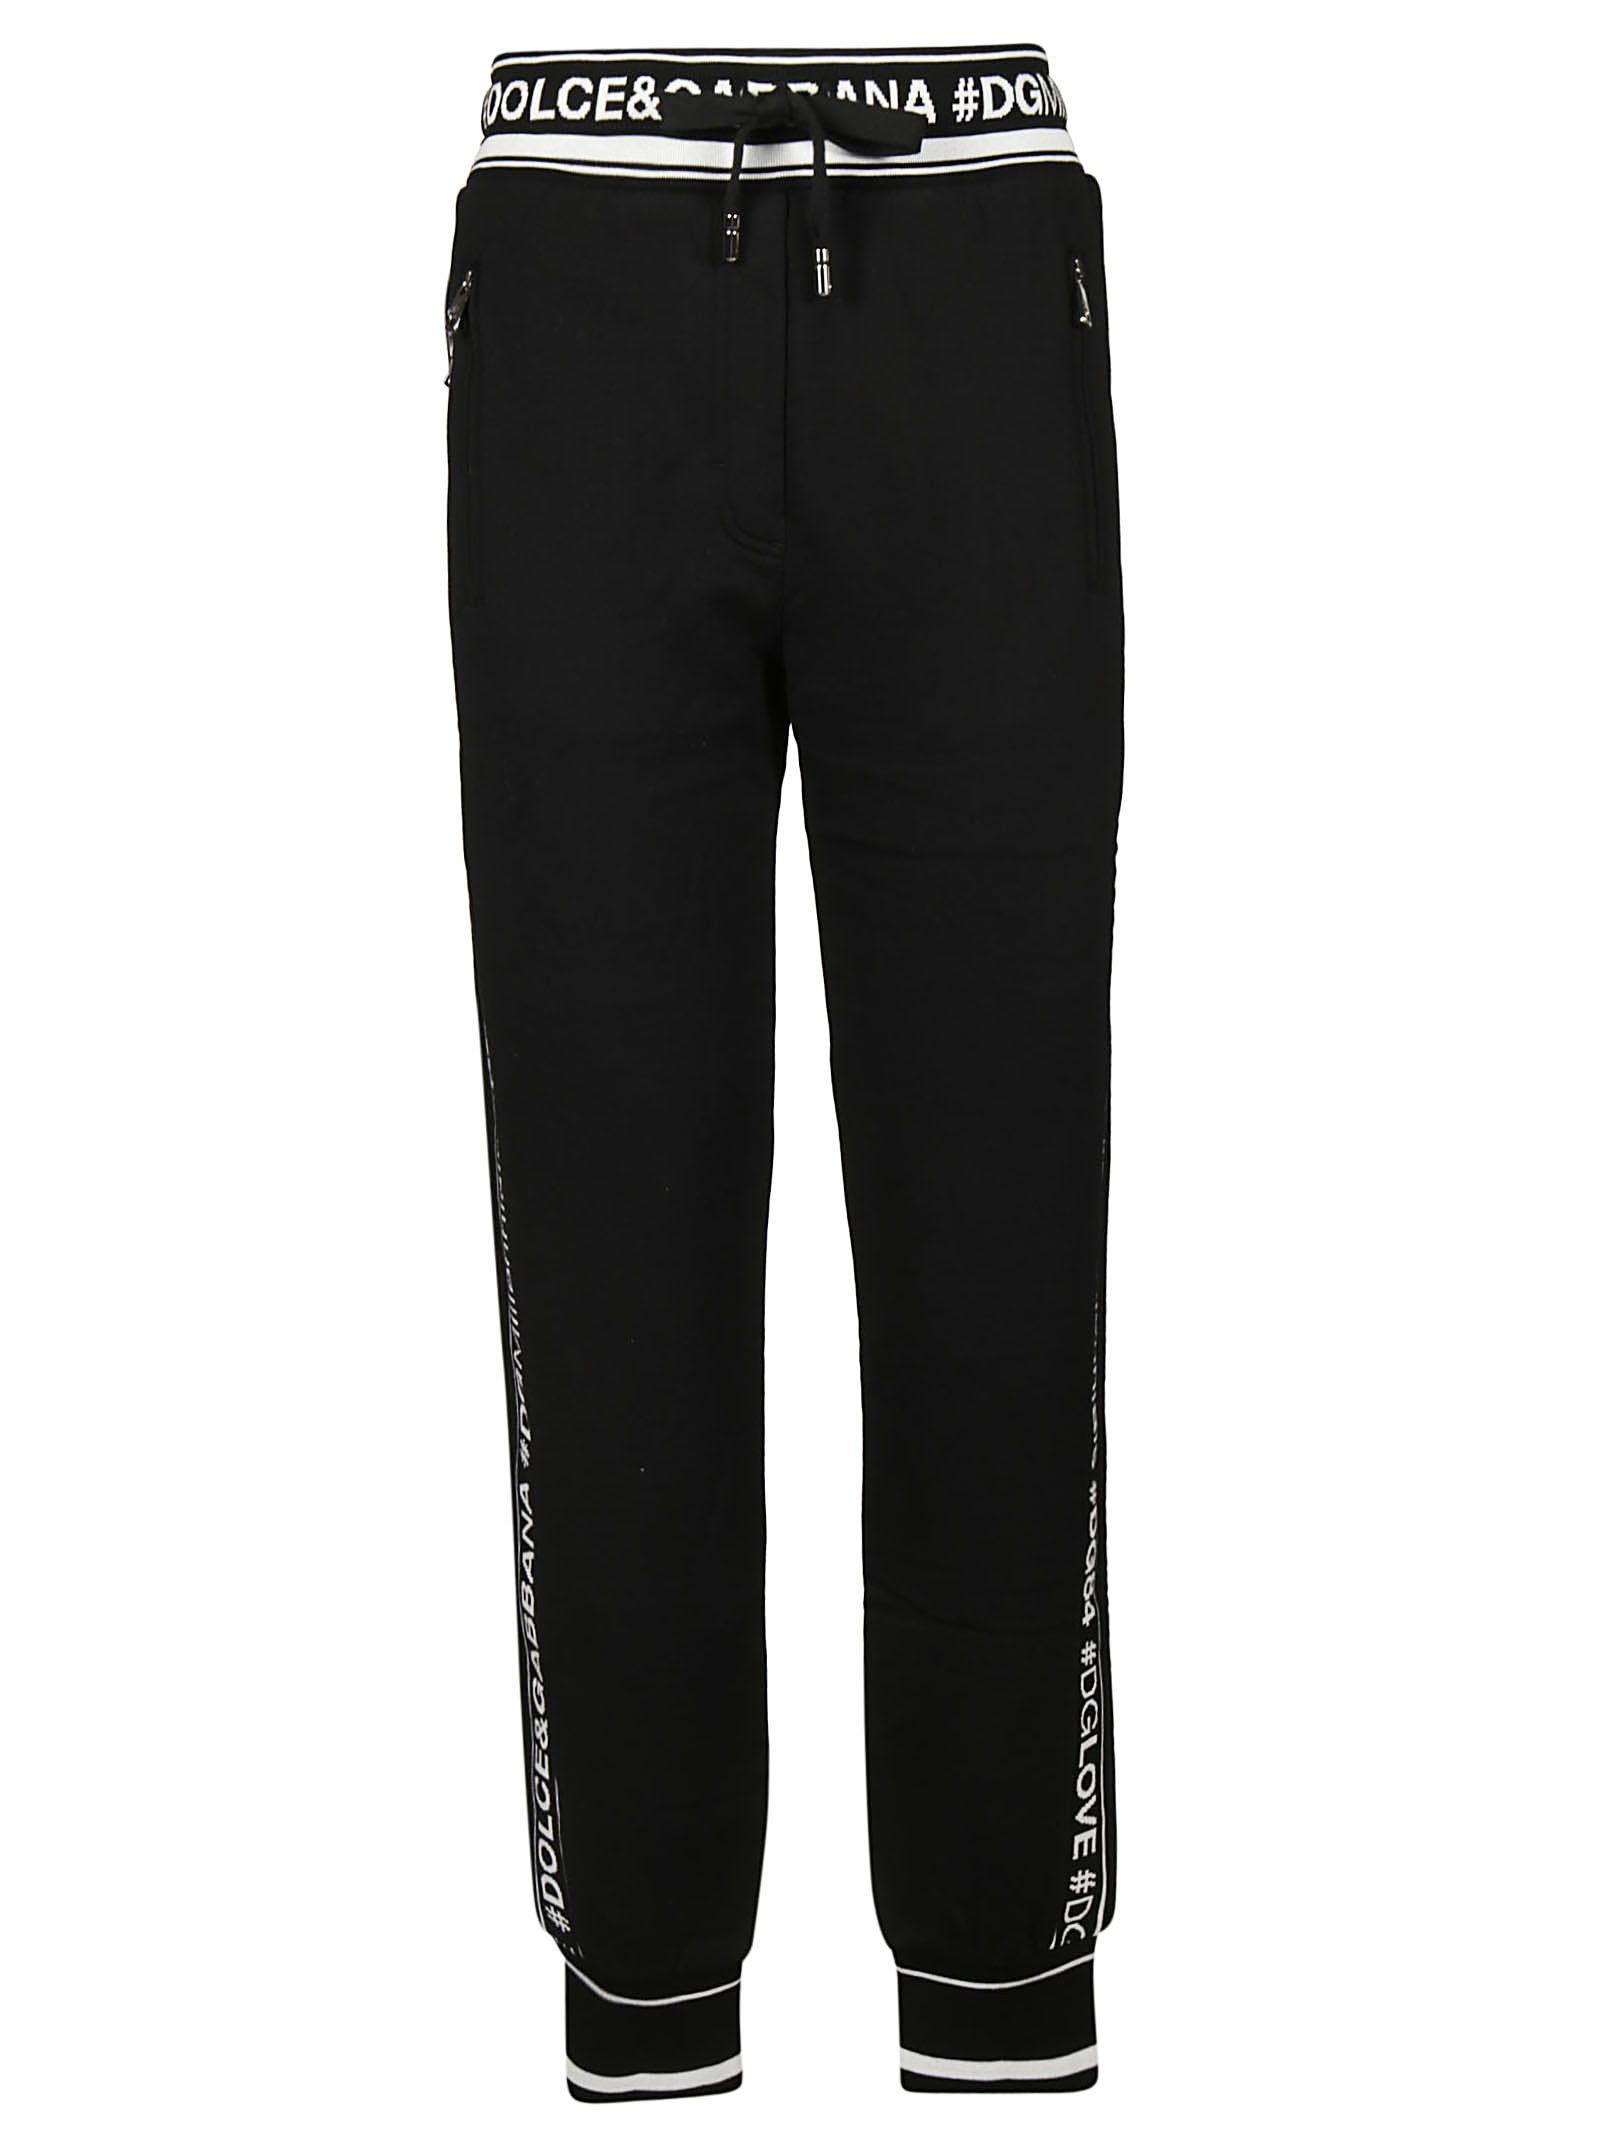 d28d67a4 Dolce & Gabbana Logo-Striped Cotton French Terry Sweatpants In Black ...